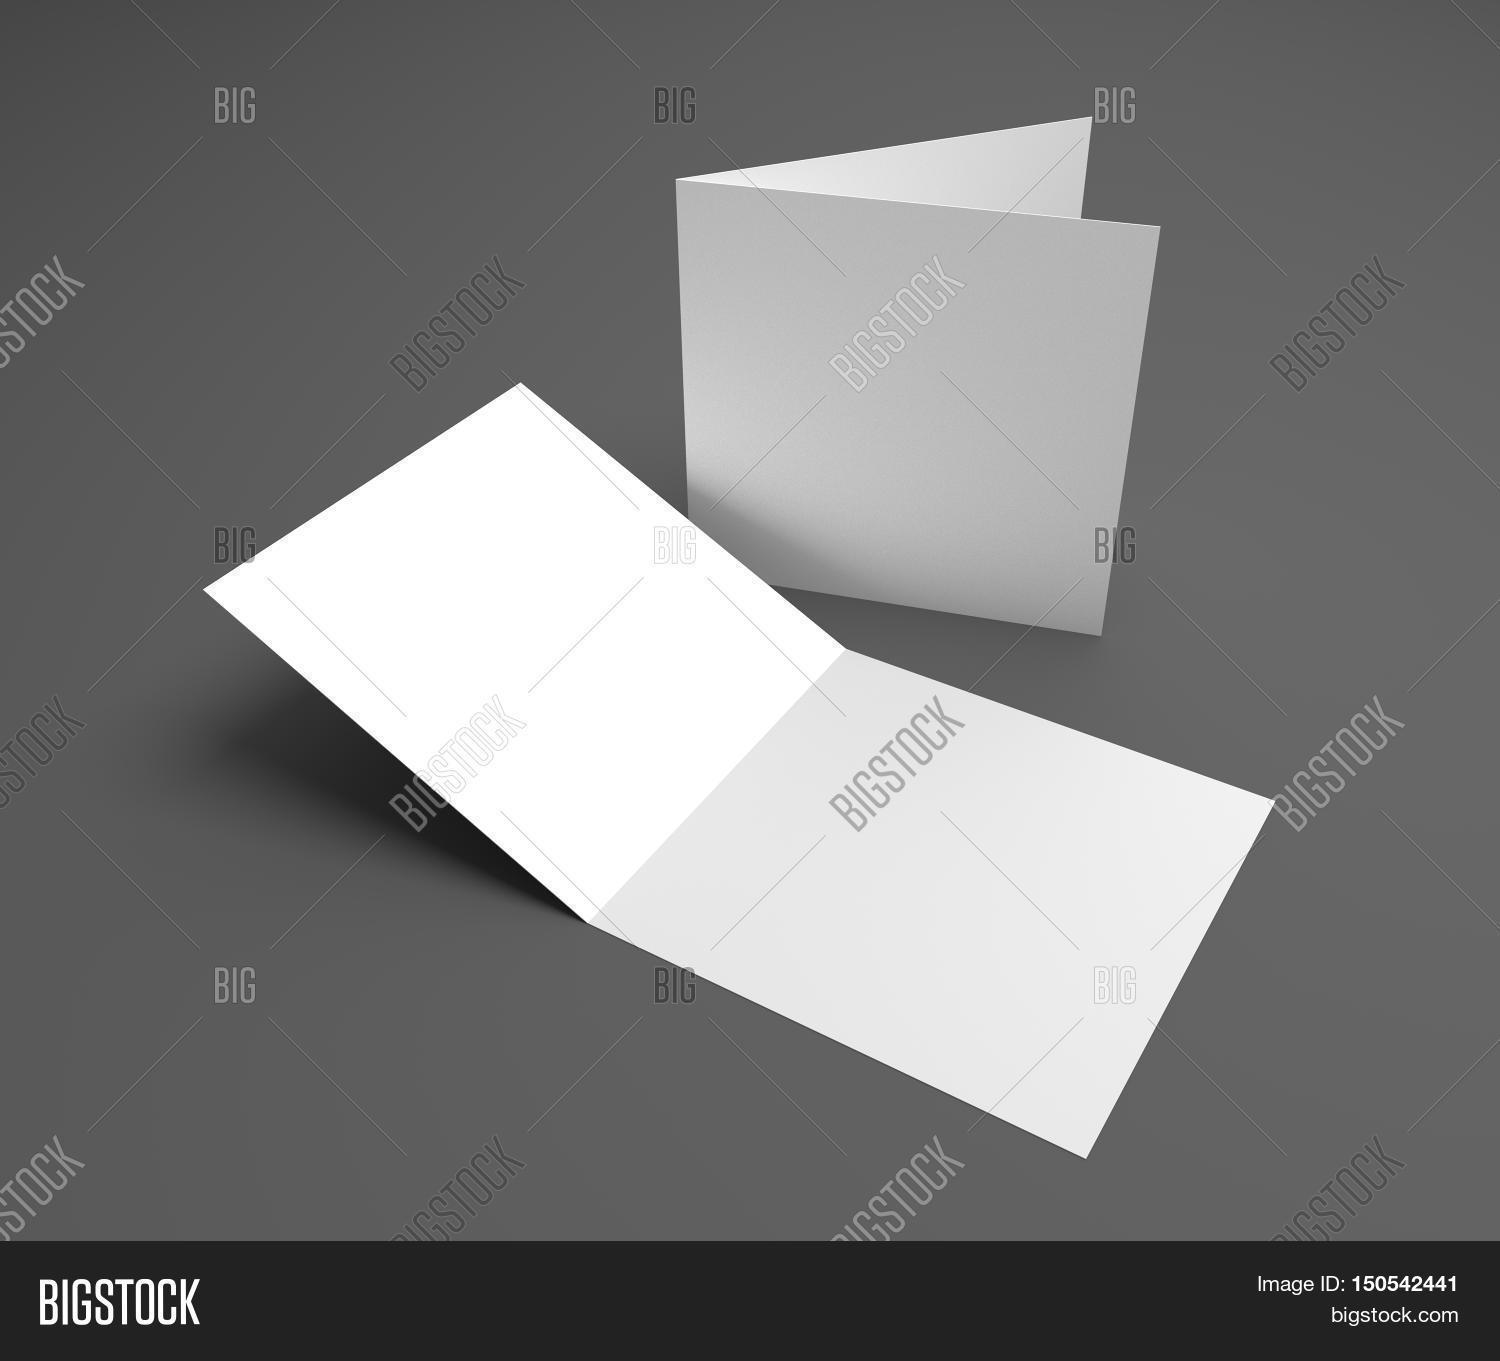 Blank Square Two Leaf Image Photo Free Trial Bigstock